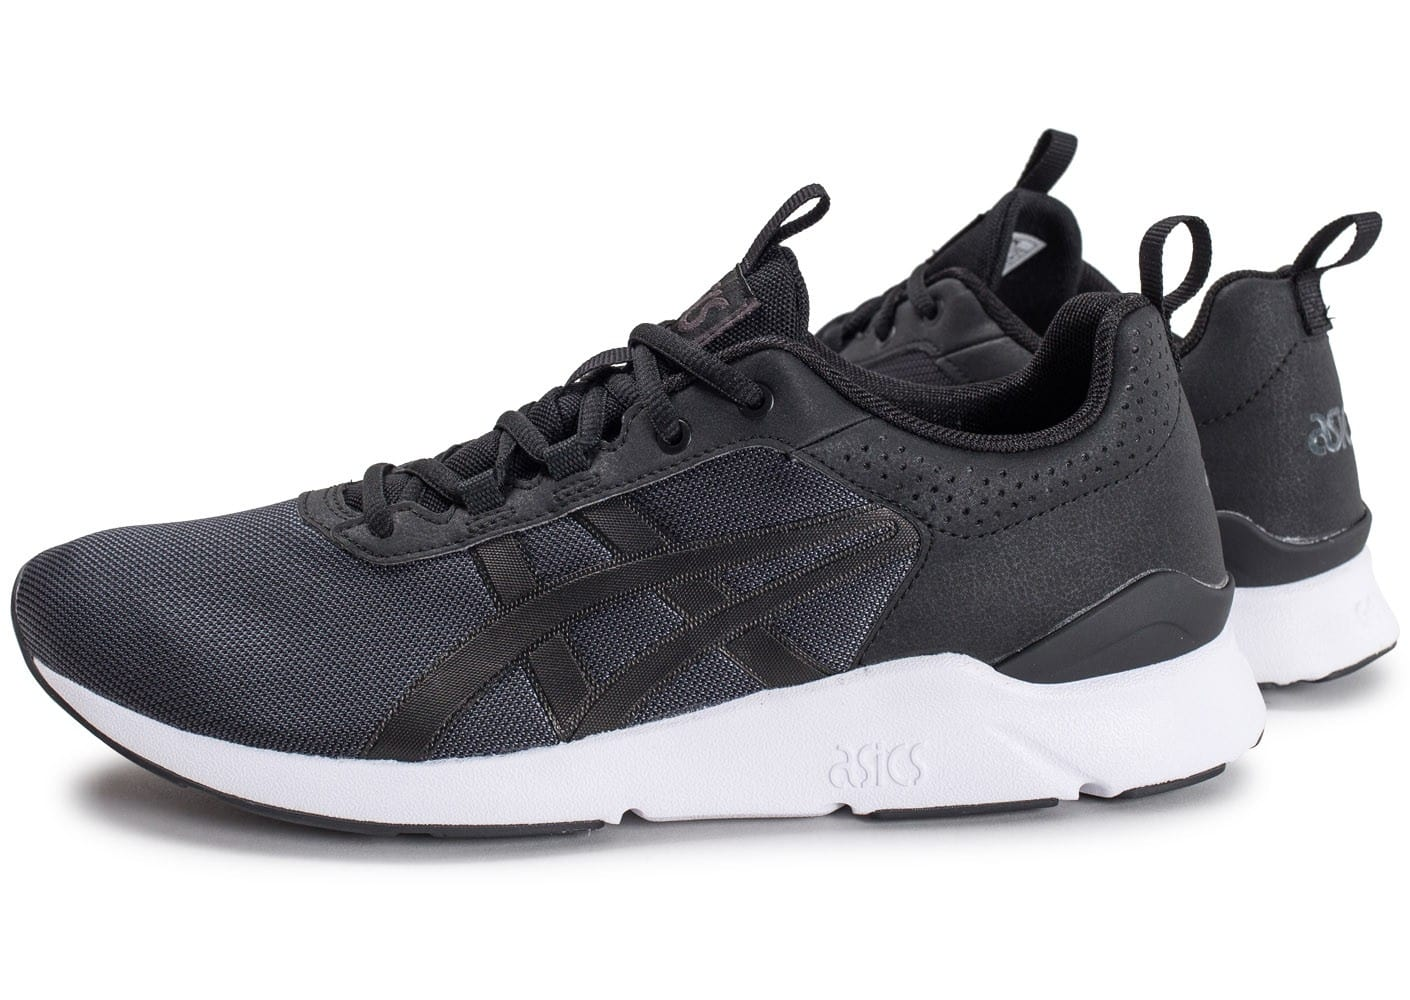 asics gel lyte runner noire chaussures homme chausport. Black Bedroom Furniture Sets. Home Design Ideas